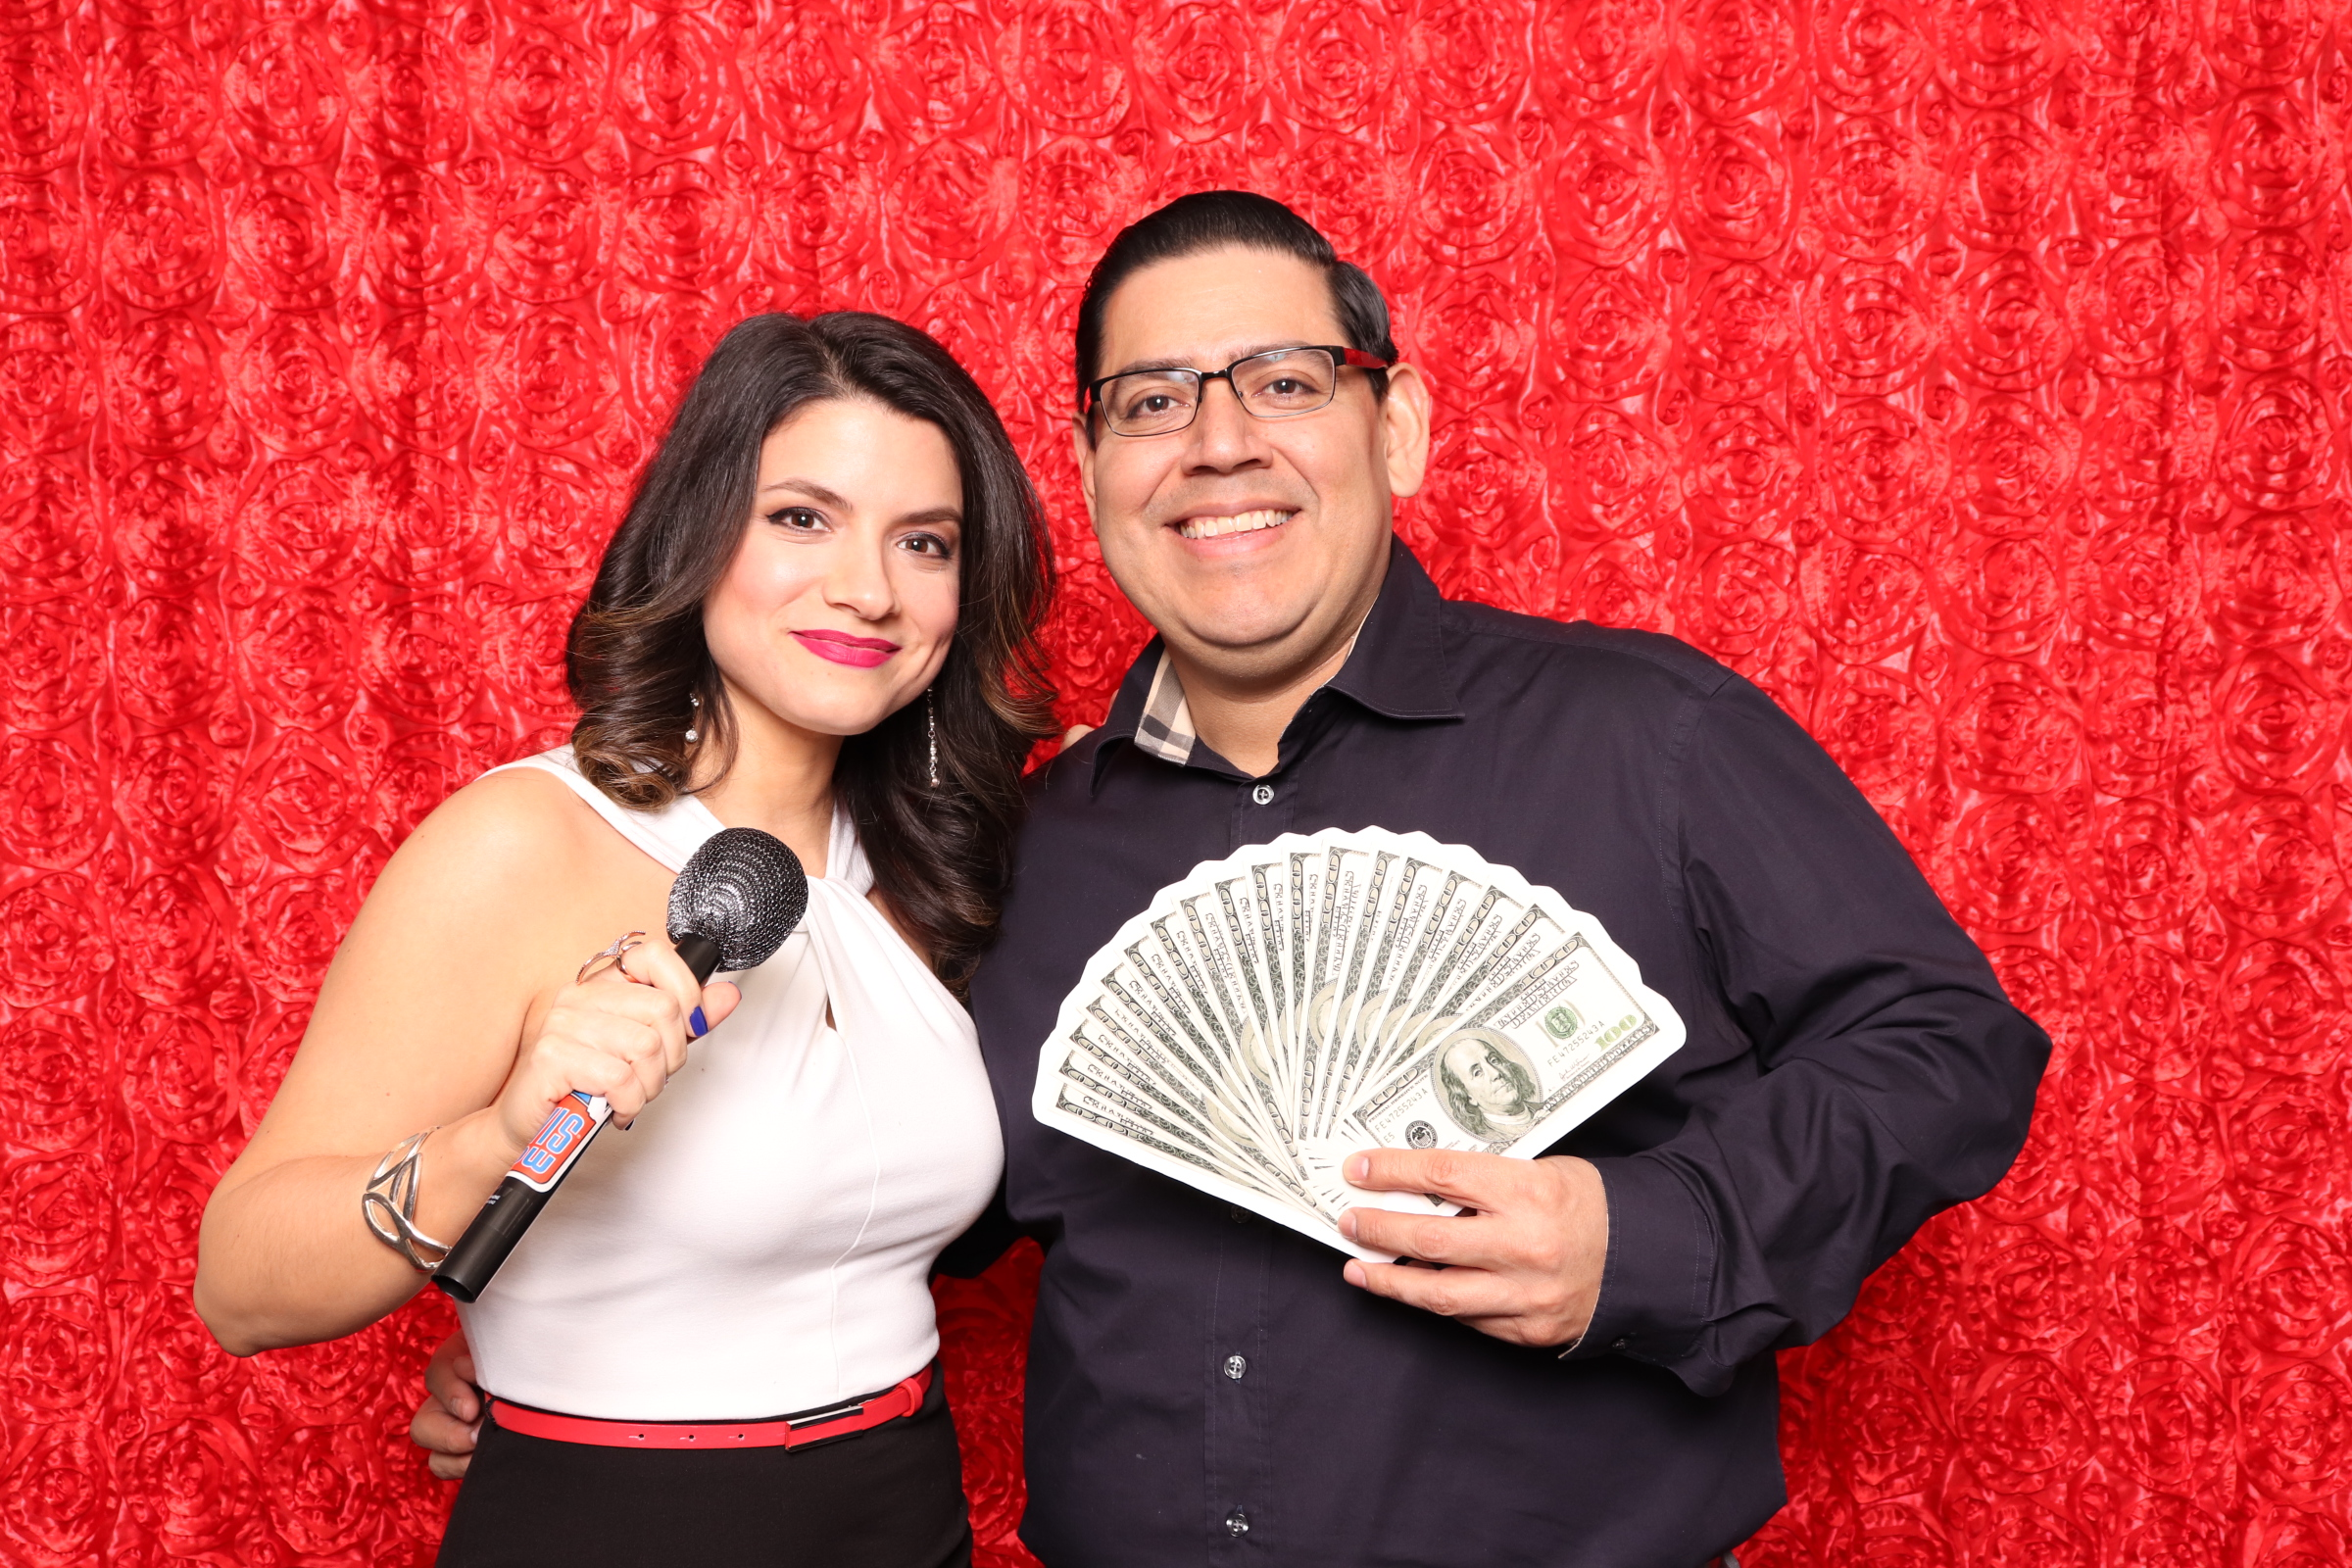 Photo Booth Red Rosette Money Prop